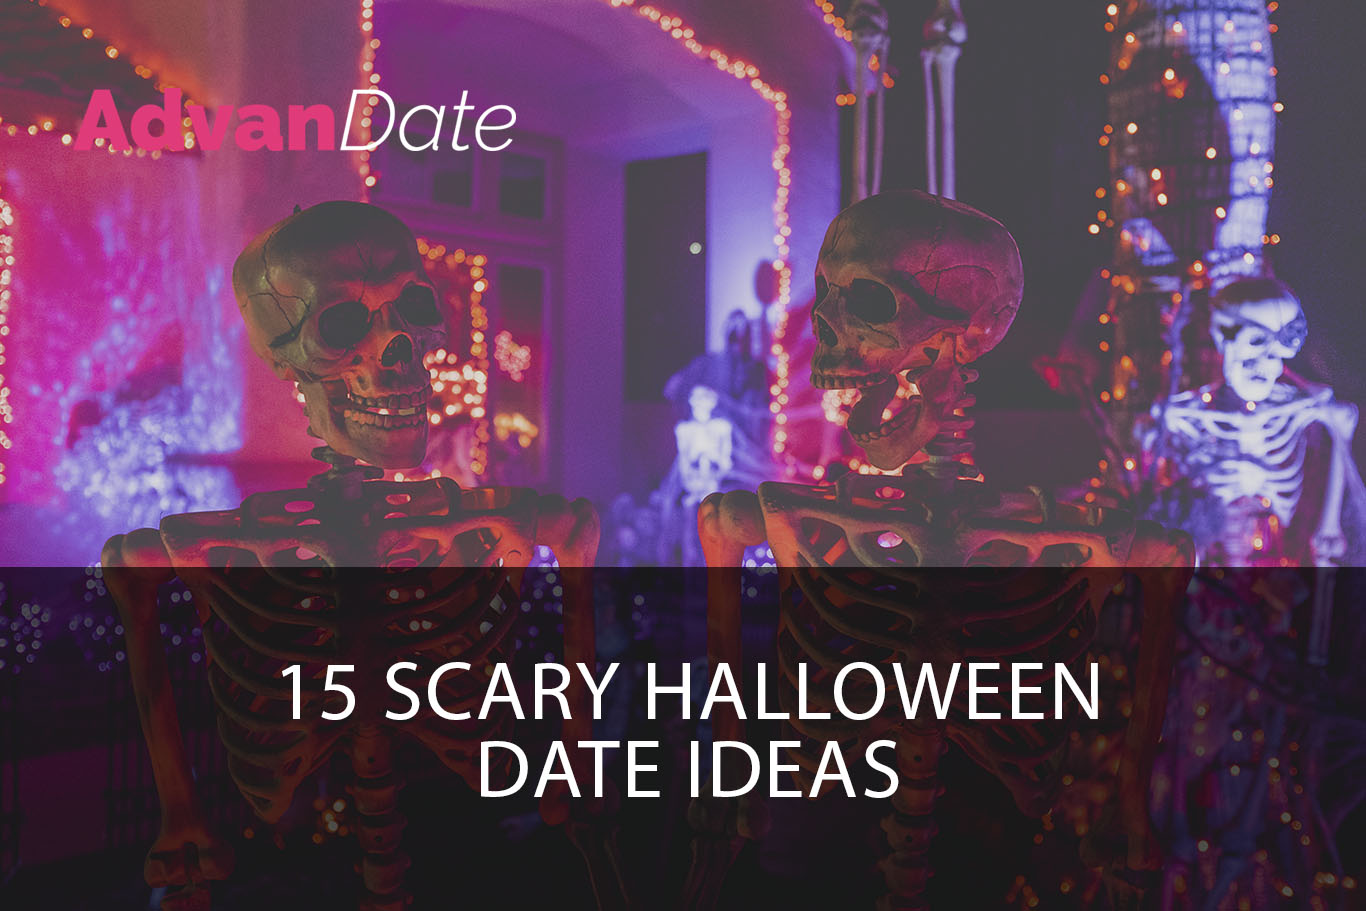 15 Scary Halloween Date ideas